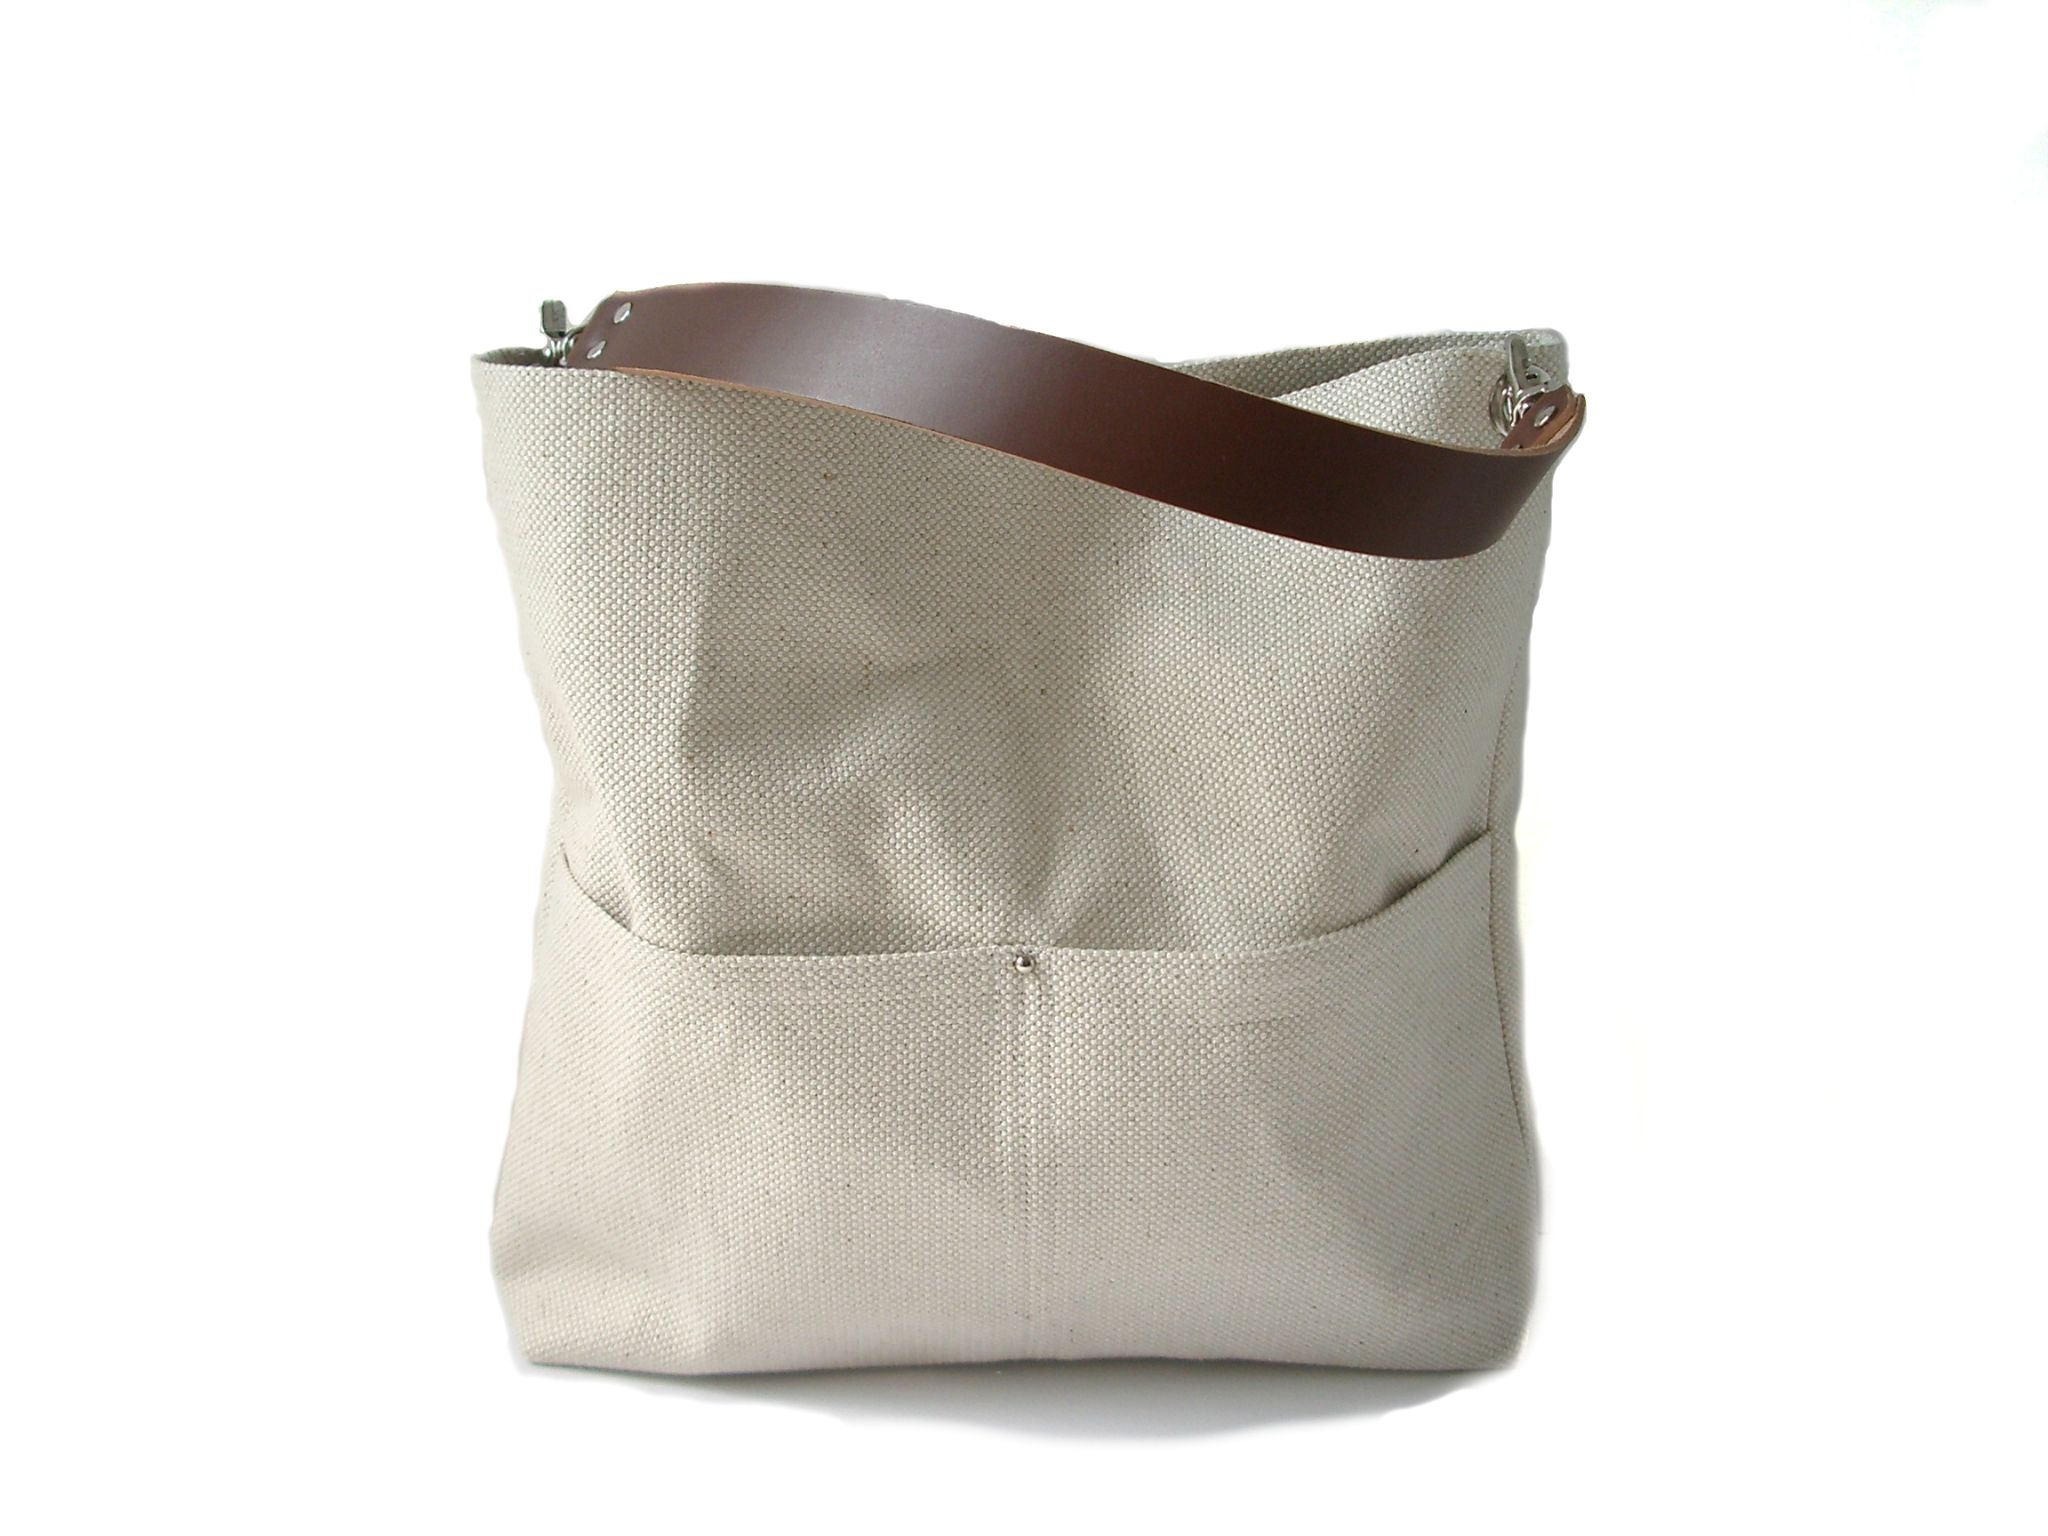 Flax Woven Bucket Tote by Independent Reign $154